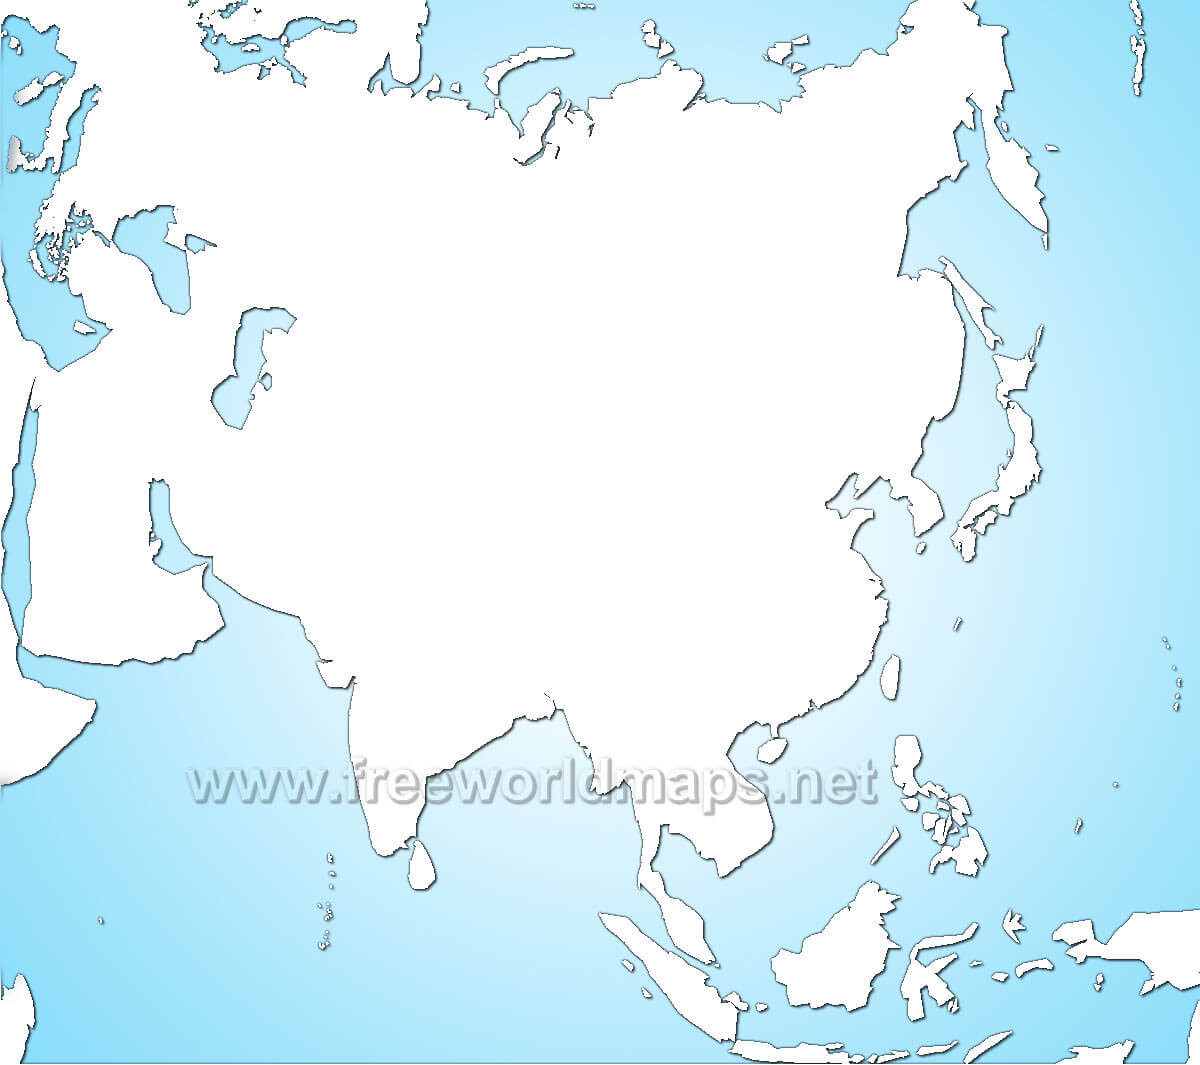 Charming Free World Maps